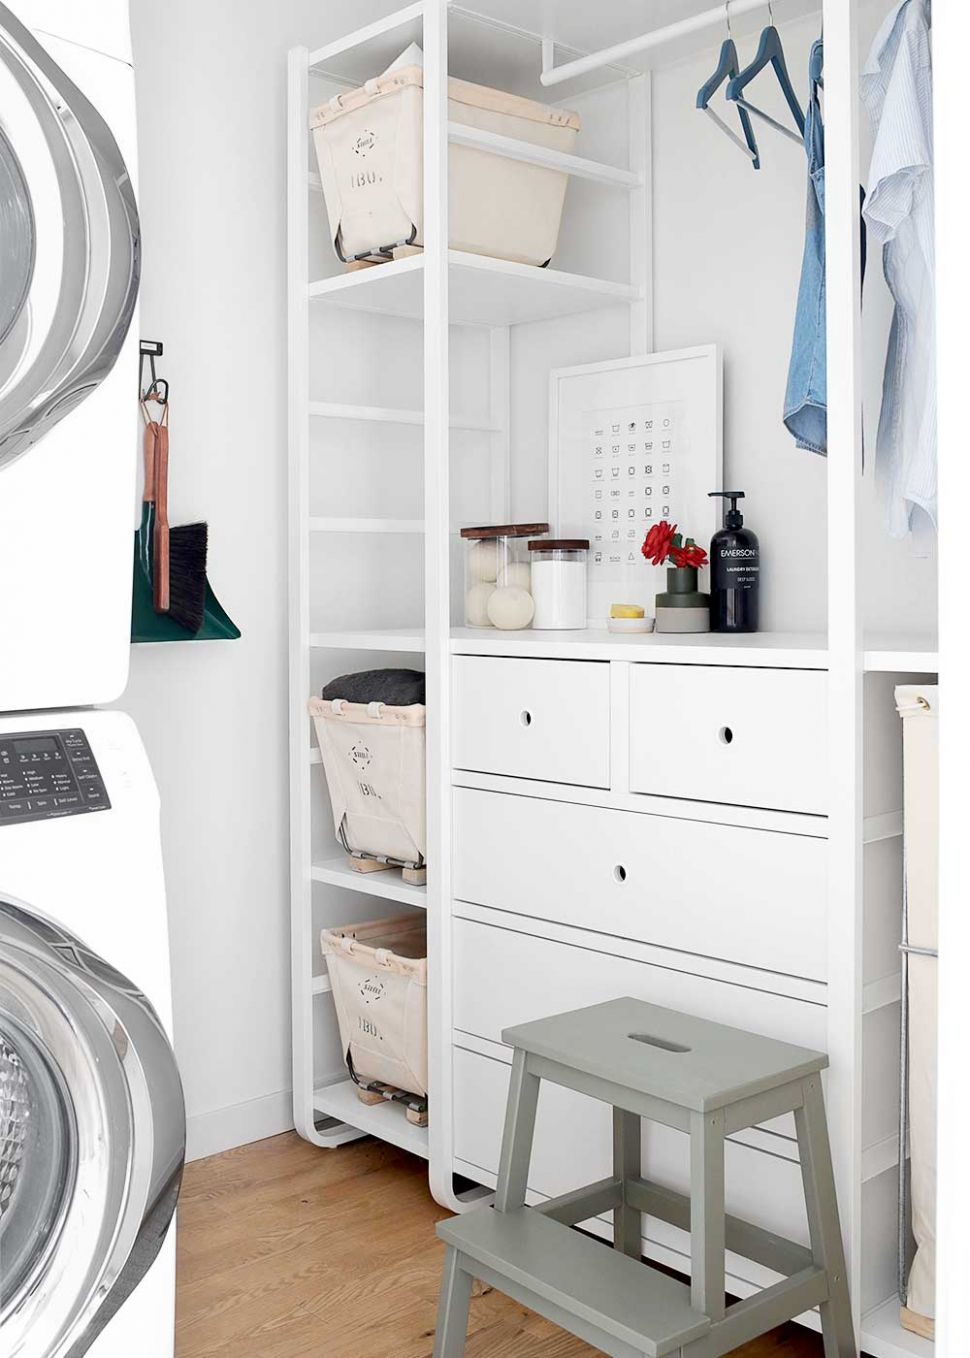 11 Favorite Laundry Rooms with Storage Ideas to Steal - laundry room ideas ikea